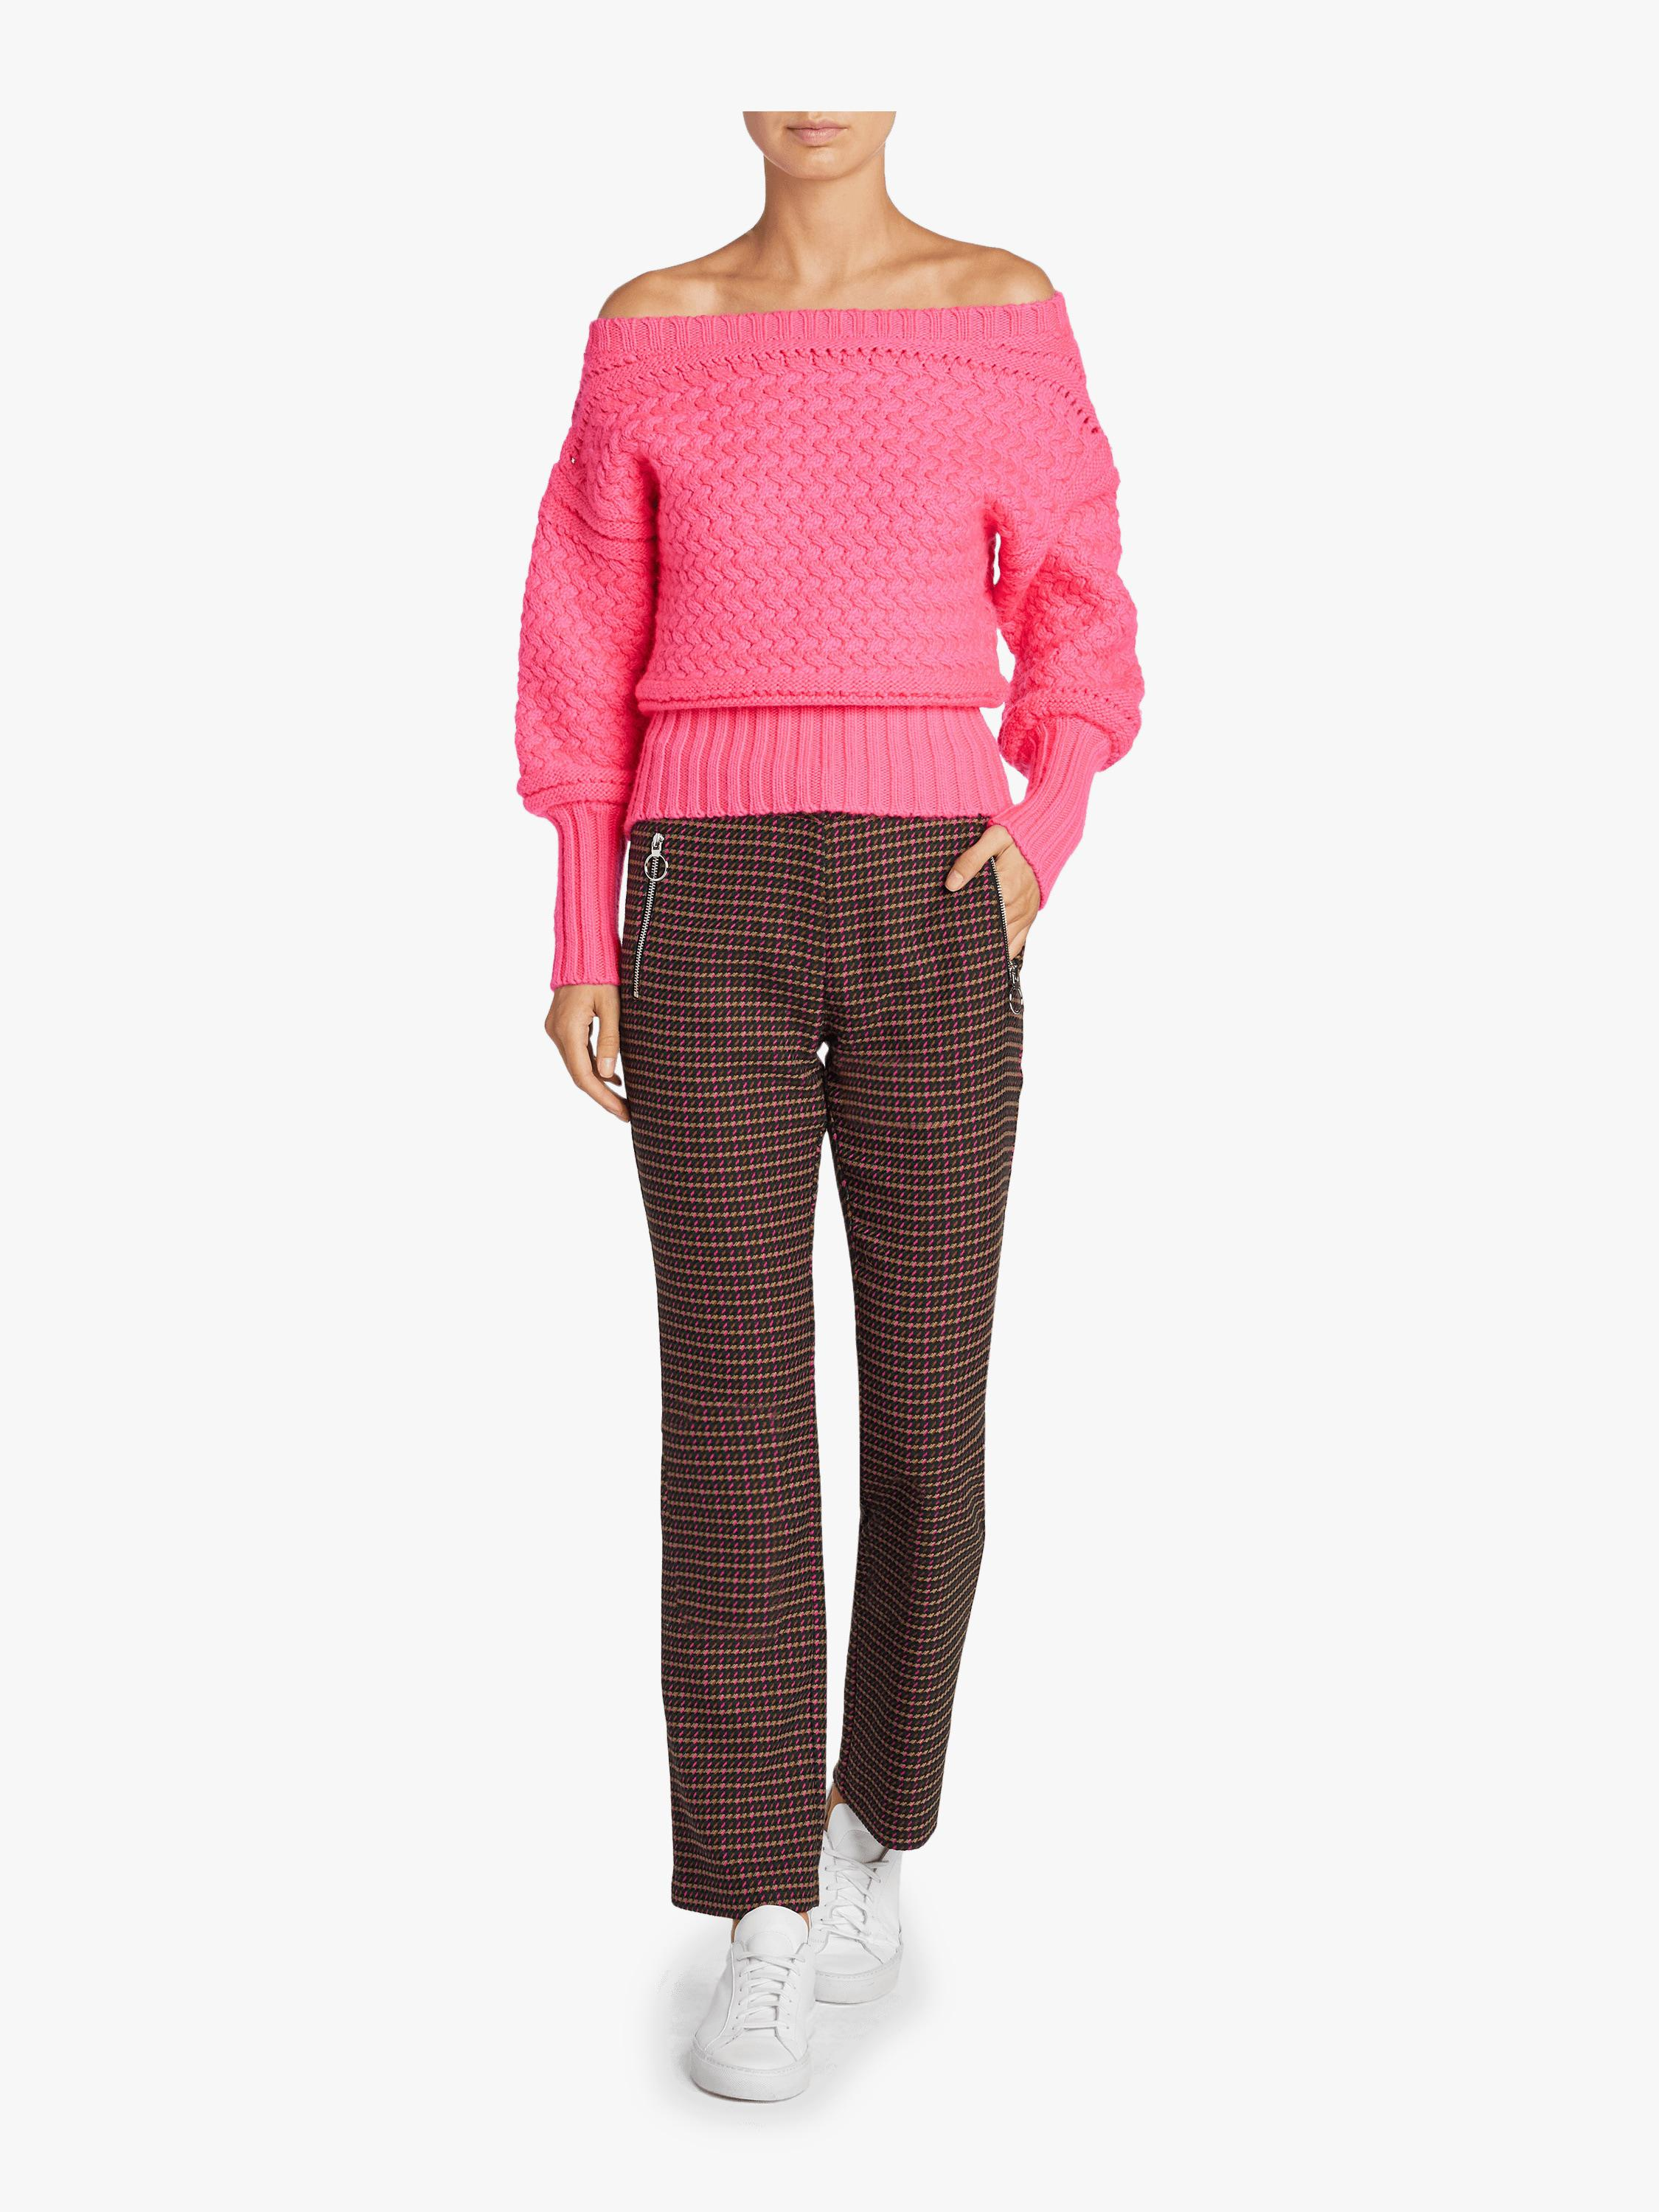 4ae0b23091b4 Lyst - Tanya Taylor Cable Knit Marie Knit Sweater in Pink